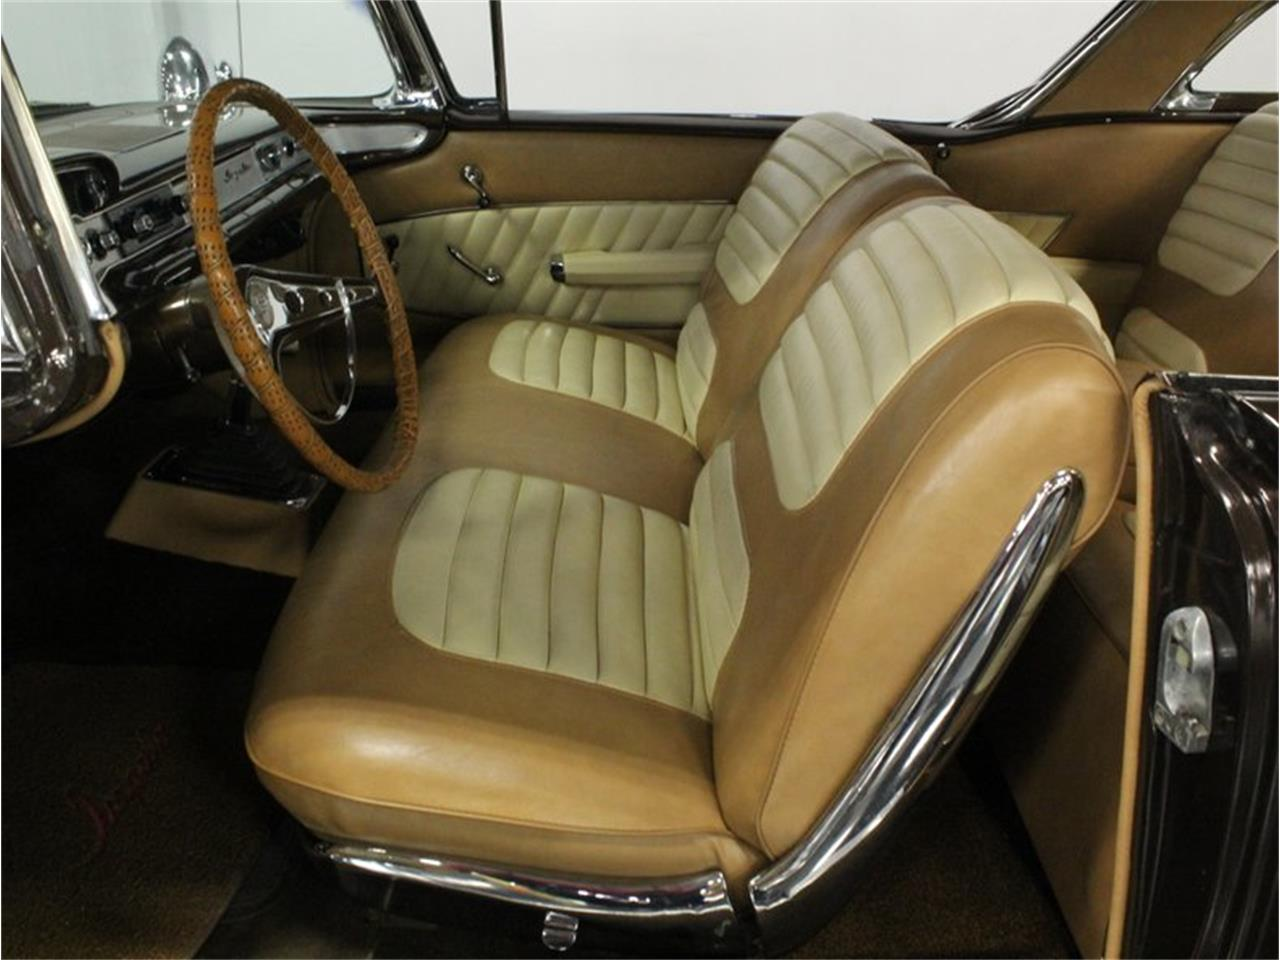 Large Picture of Classic 1958 Chevrolet Impala located in Texas Offered by Streetside Classics - Dallas / Fort Worth - HX8B